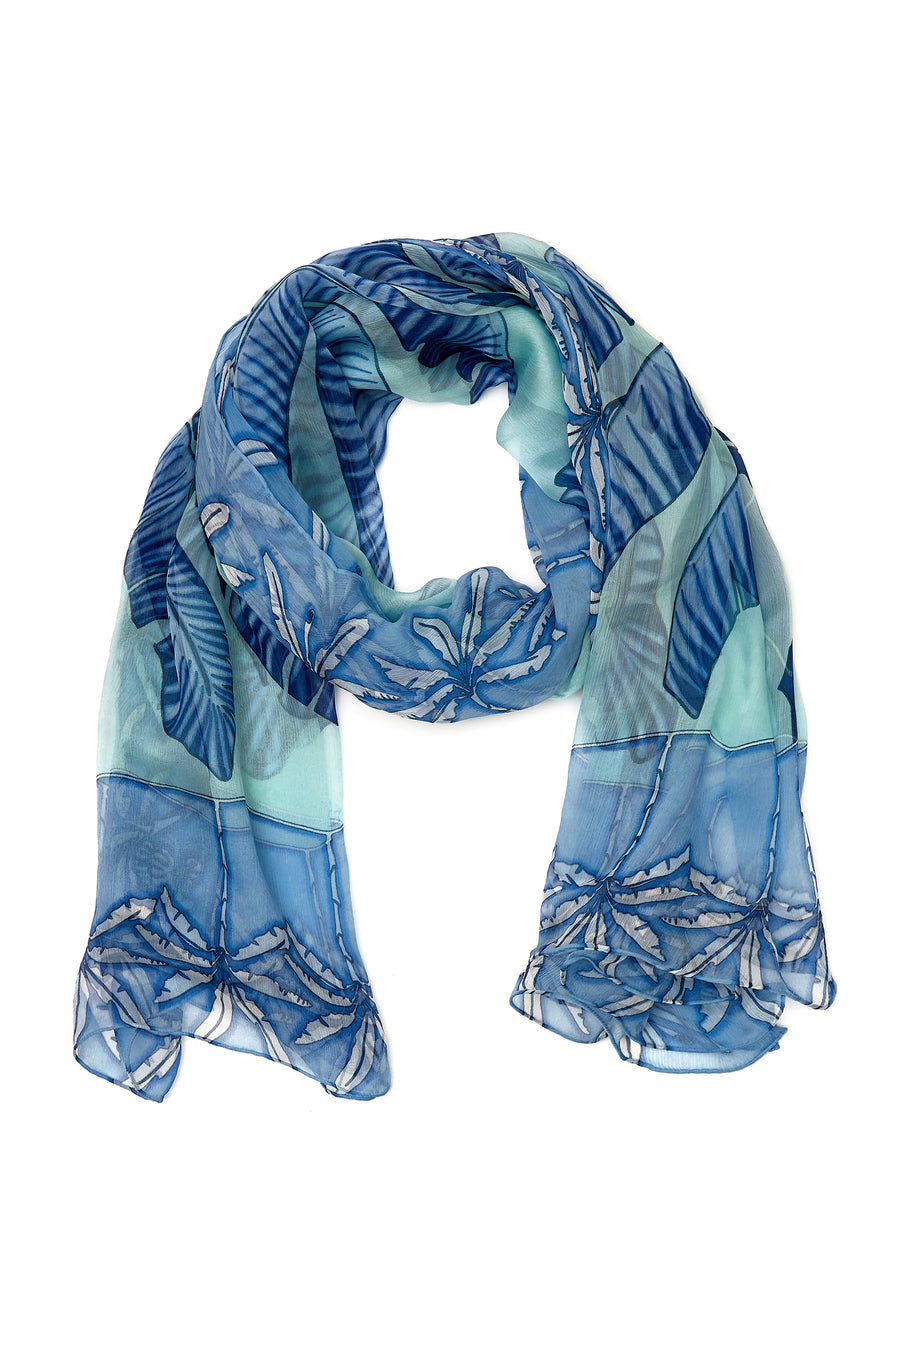 Large chiffon silk sarong scarf, Banana Tree print in blue designed by Lotty B Mustique style with a bikini and straw hat